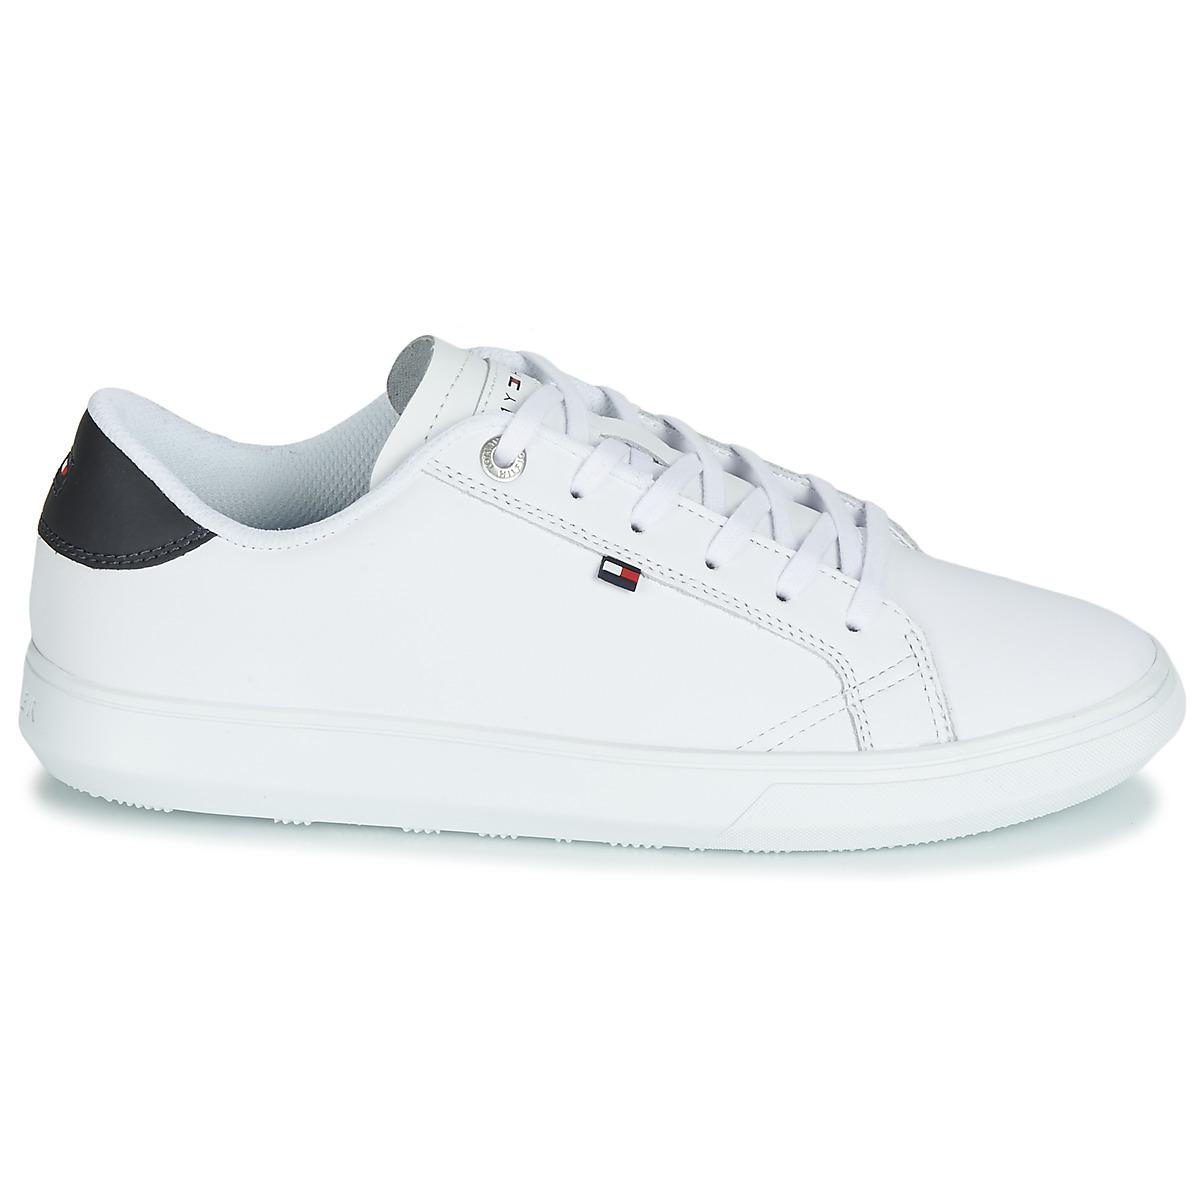 3b335cba Tommy Hilfiger Daniel 1 Shoes (trainers) in White for Men - Lyst